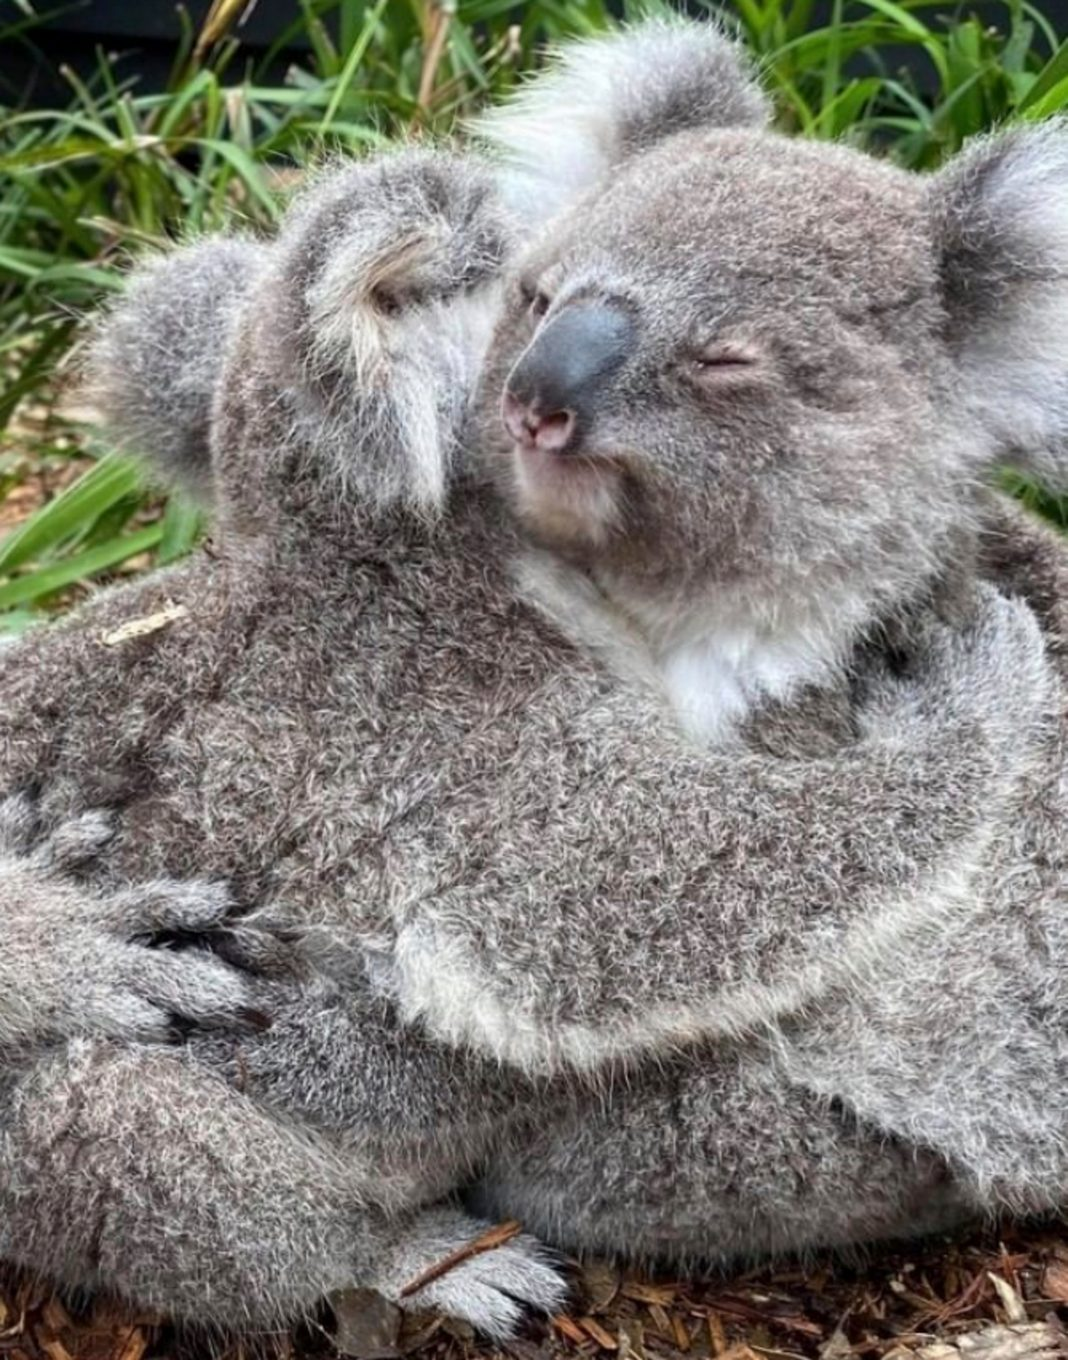 cuddly koalas share a heart warming hug in adorable snaps